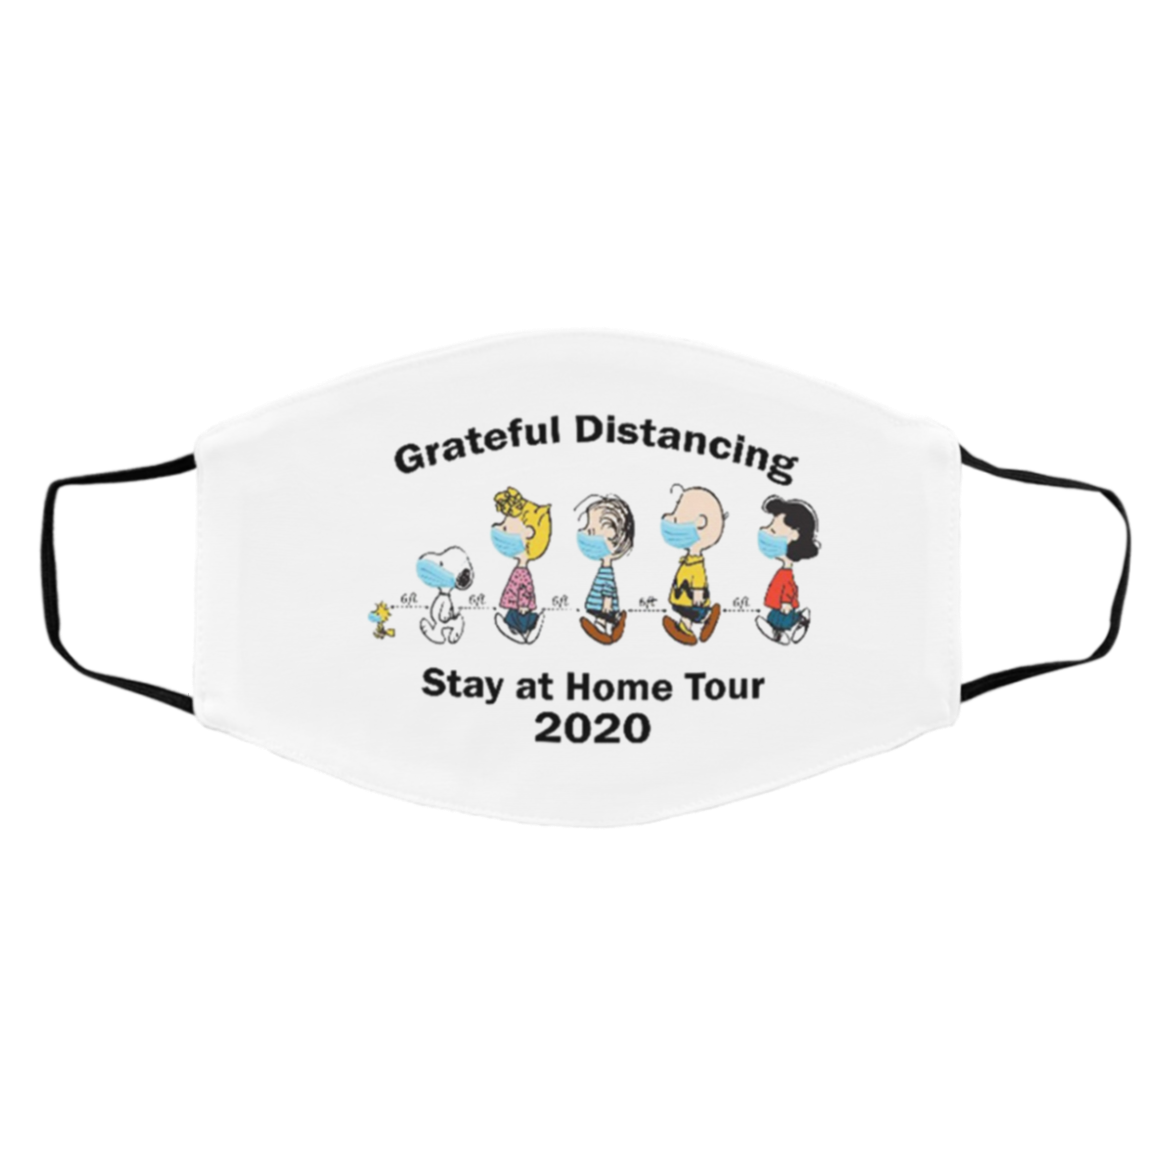 Gra-teful Dist-ancing Stay At Home Tour 2020 Snoopy Charlie Brown Face Mask Filter